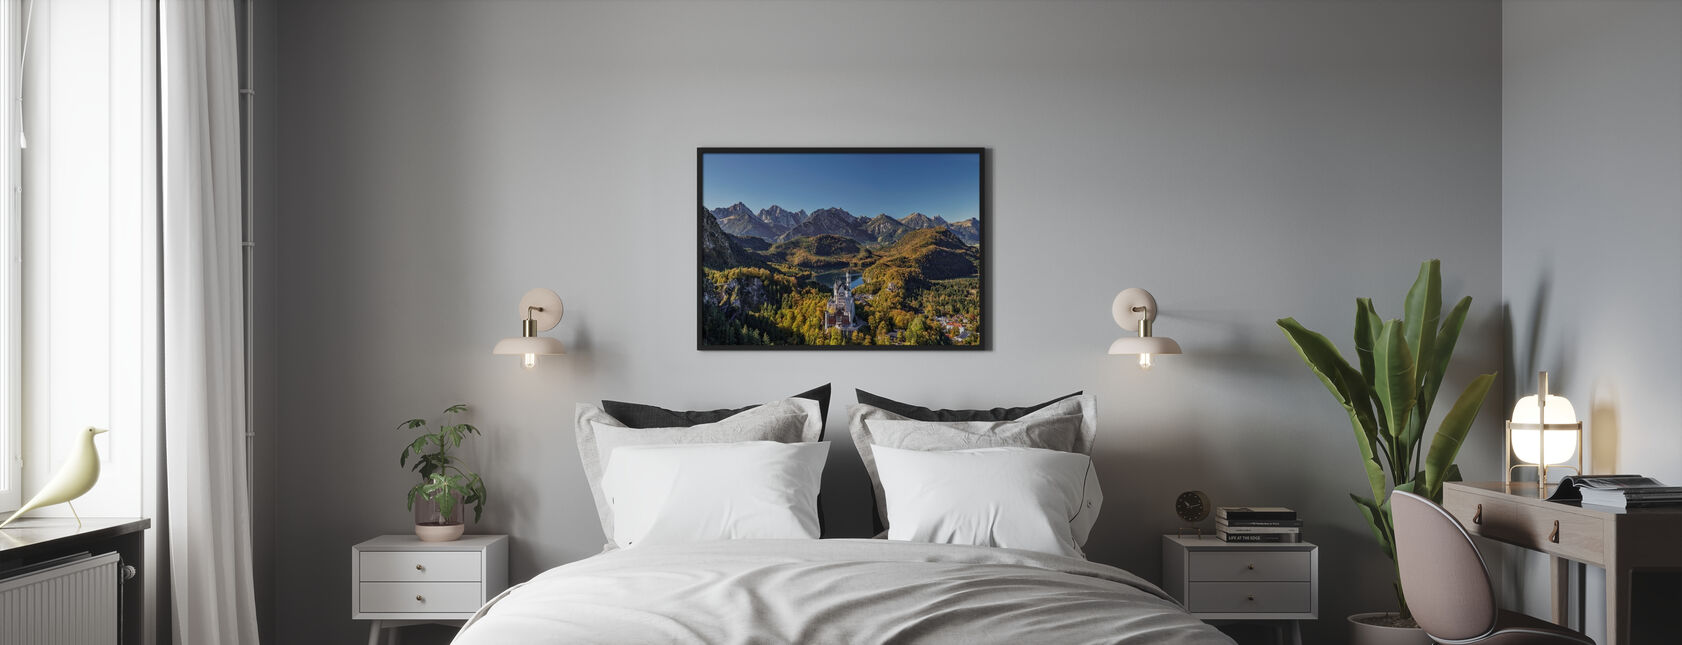 Castle in the Mountains - Framed print - Bedroom